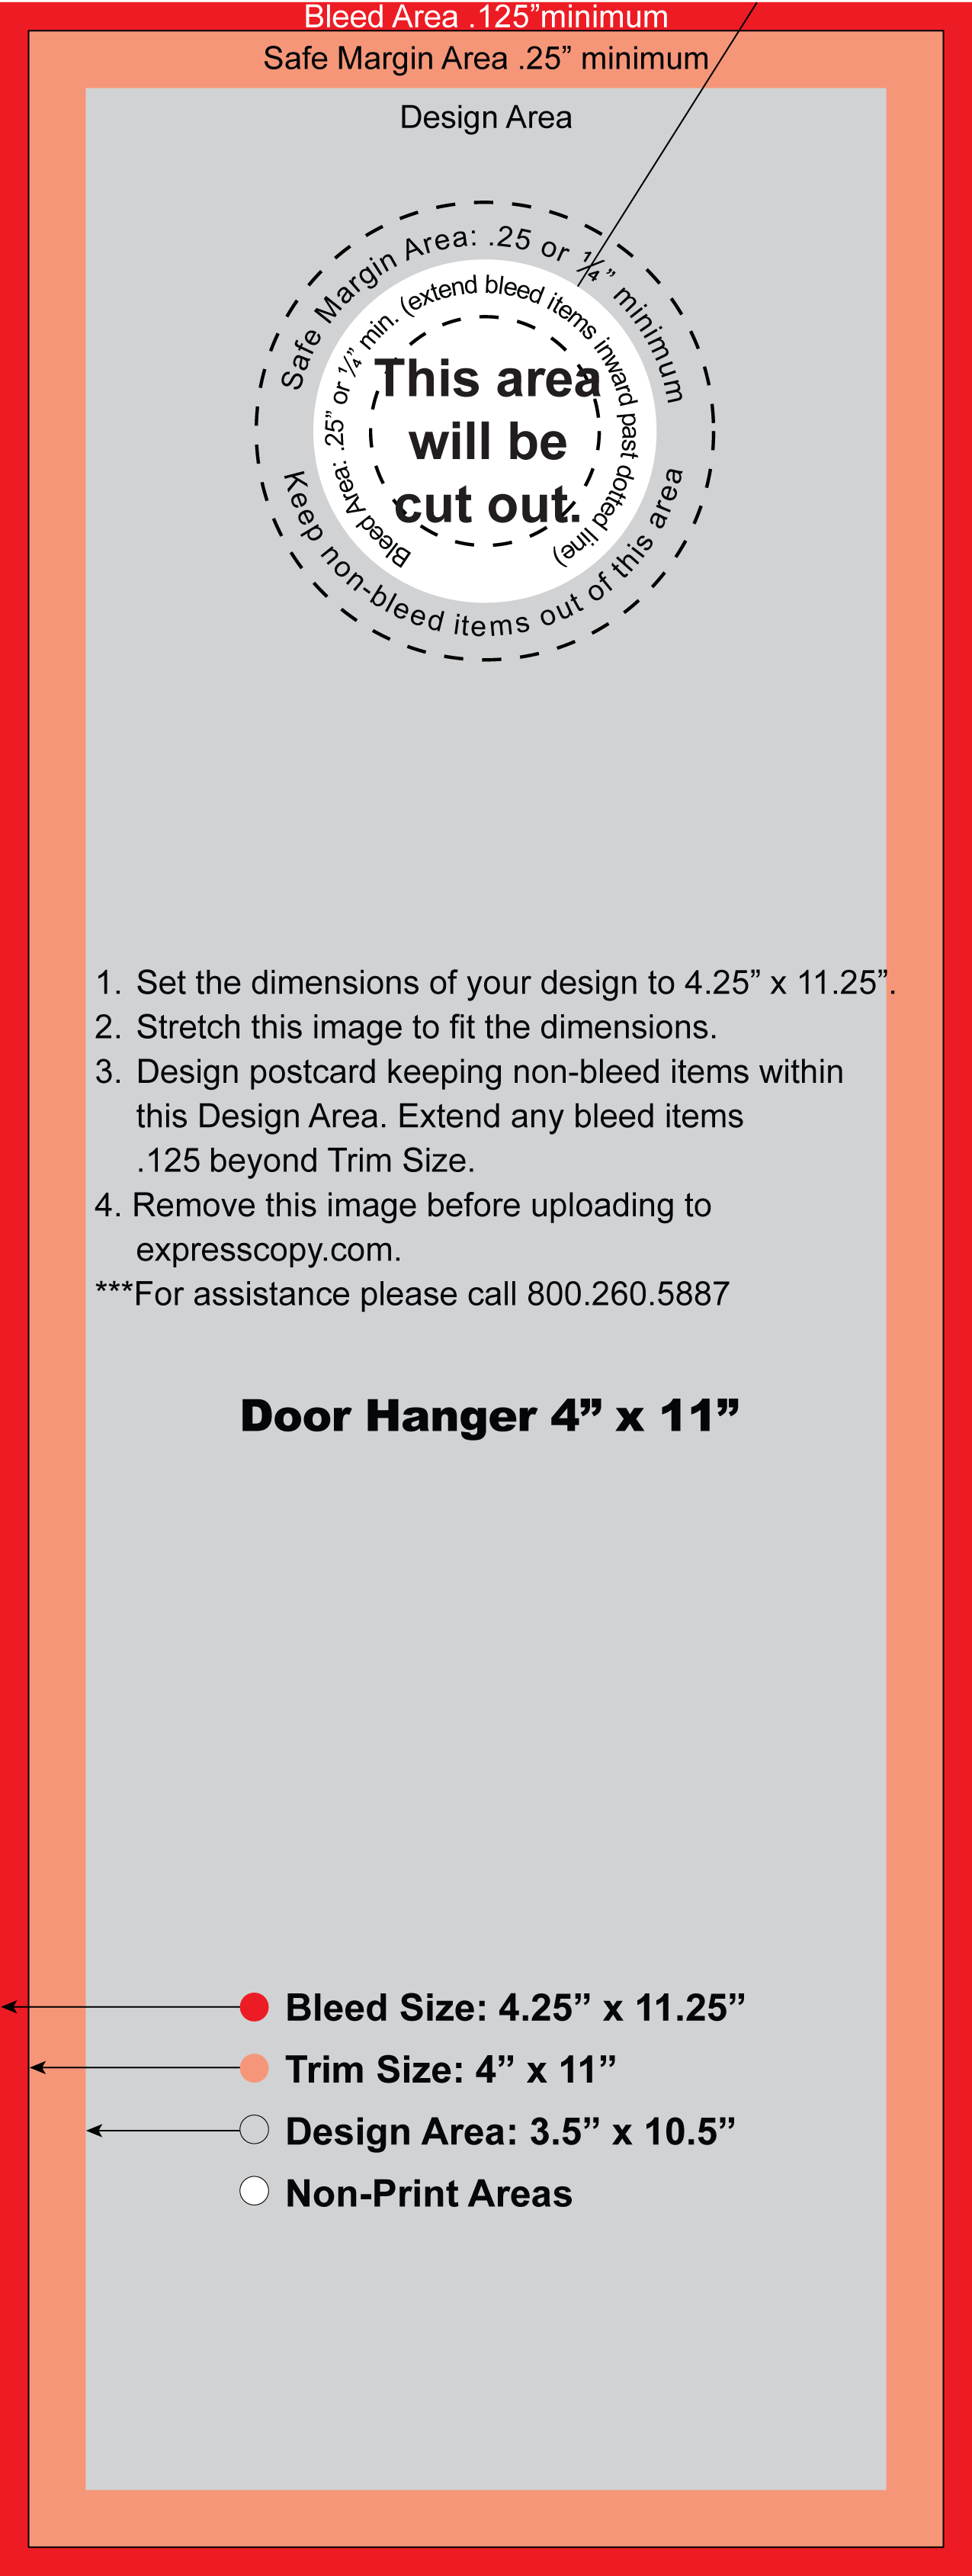 Design Door Hangers Online For Free architectural home design styles house architecture styles unique architectural home design styles best decoration Door Hanger Design Specifications